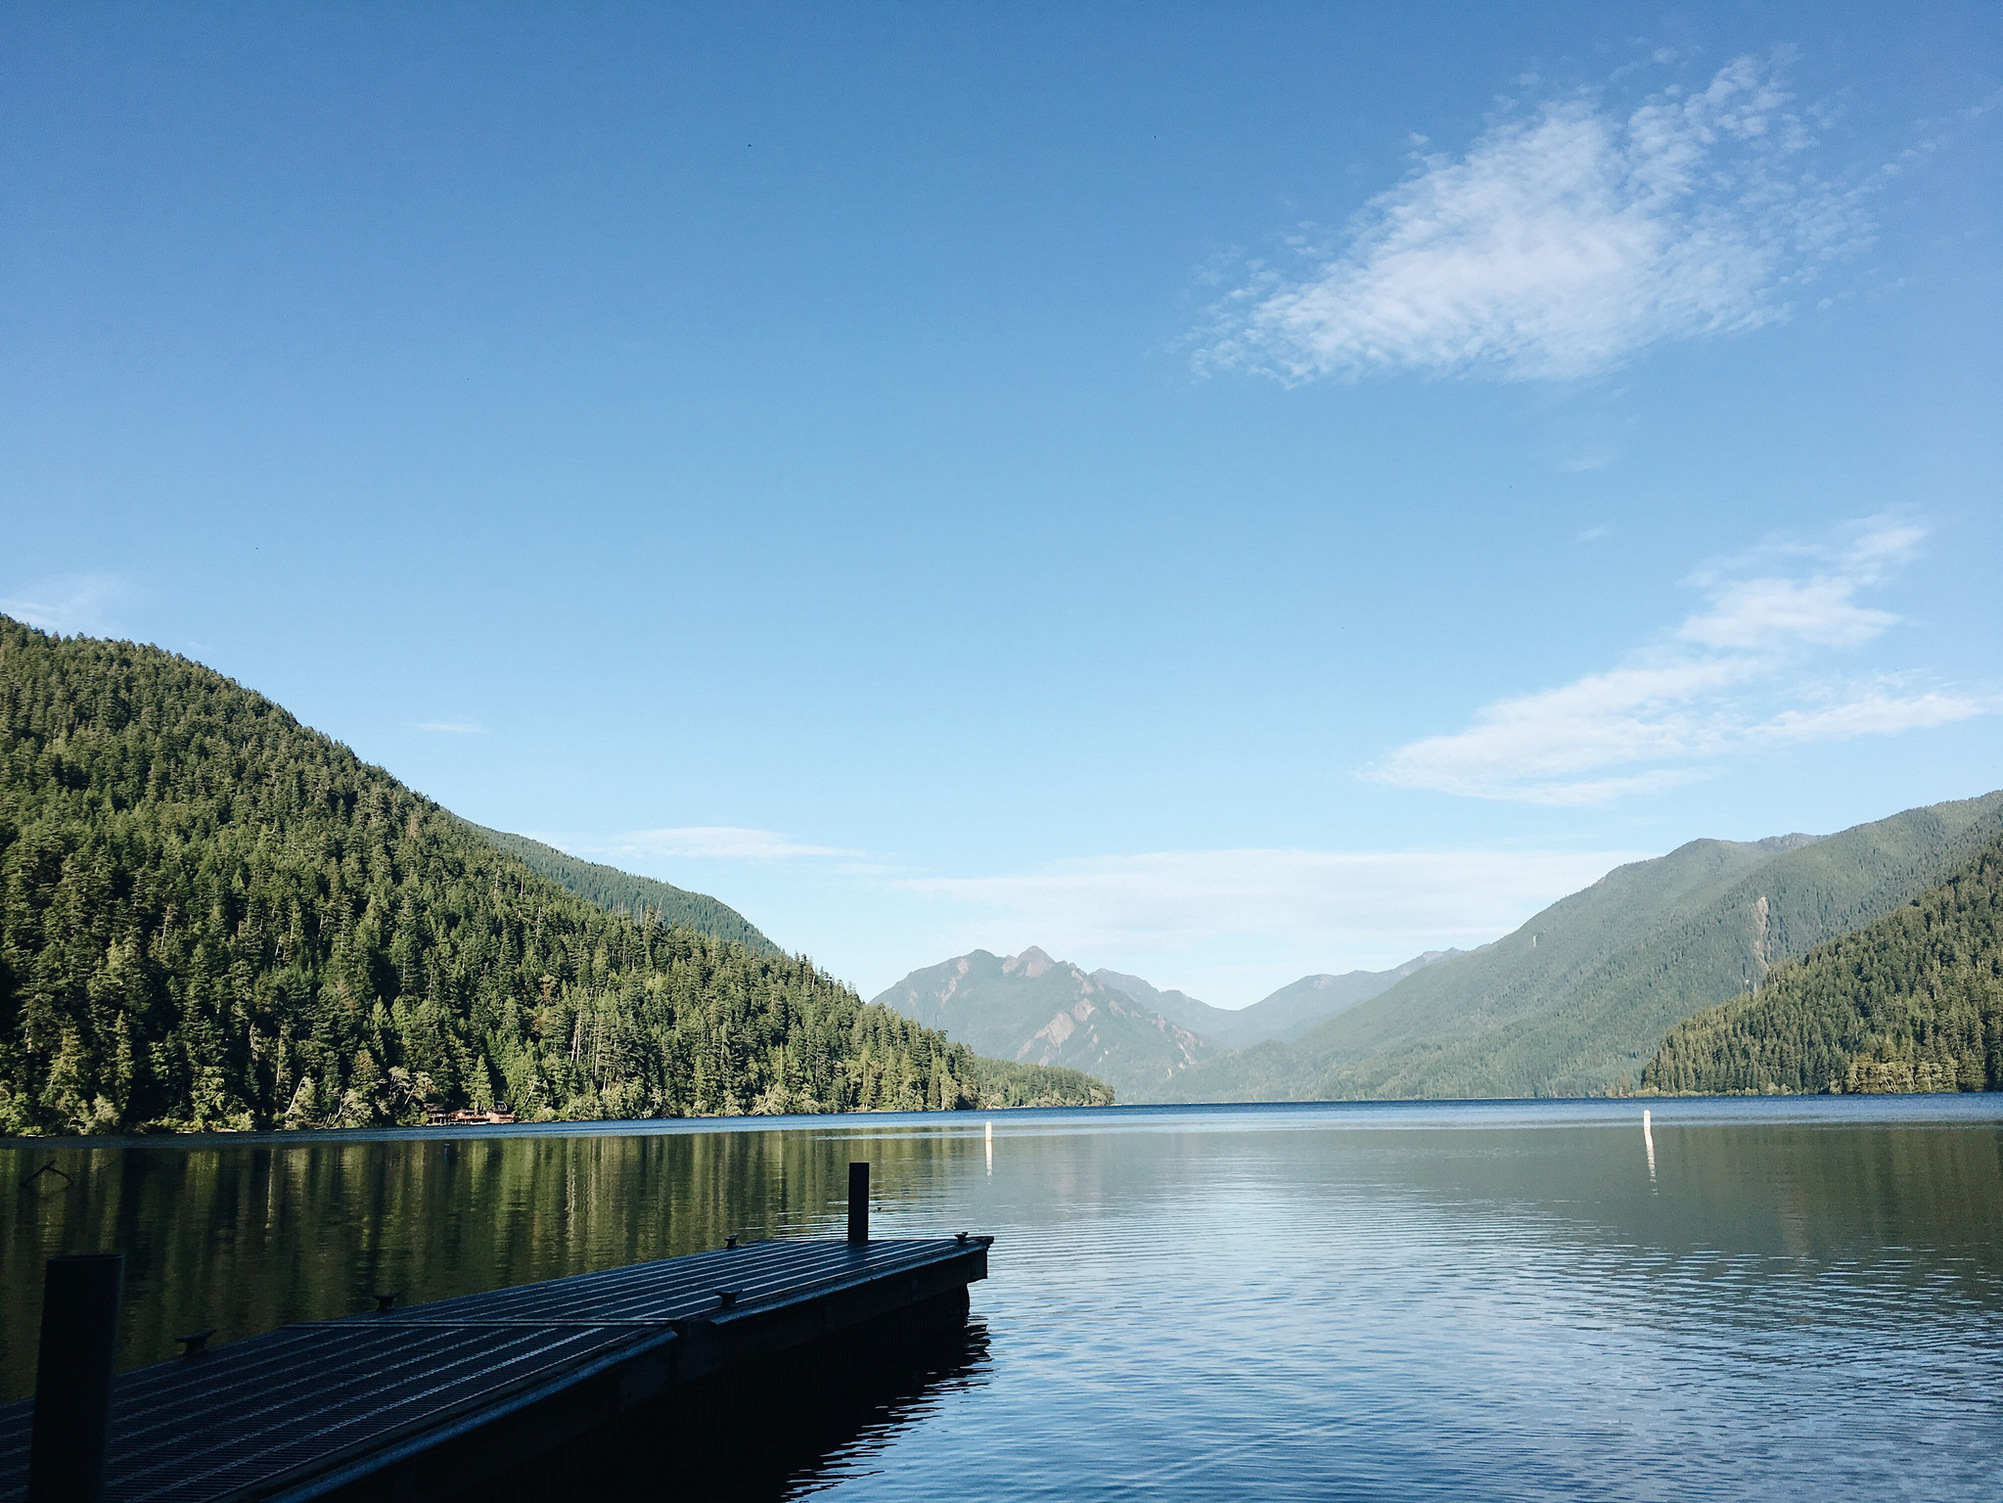 crescent lake, washington